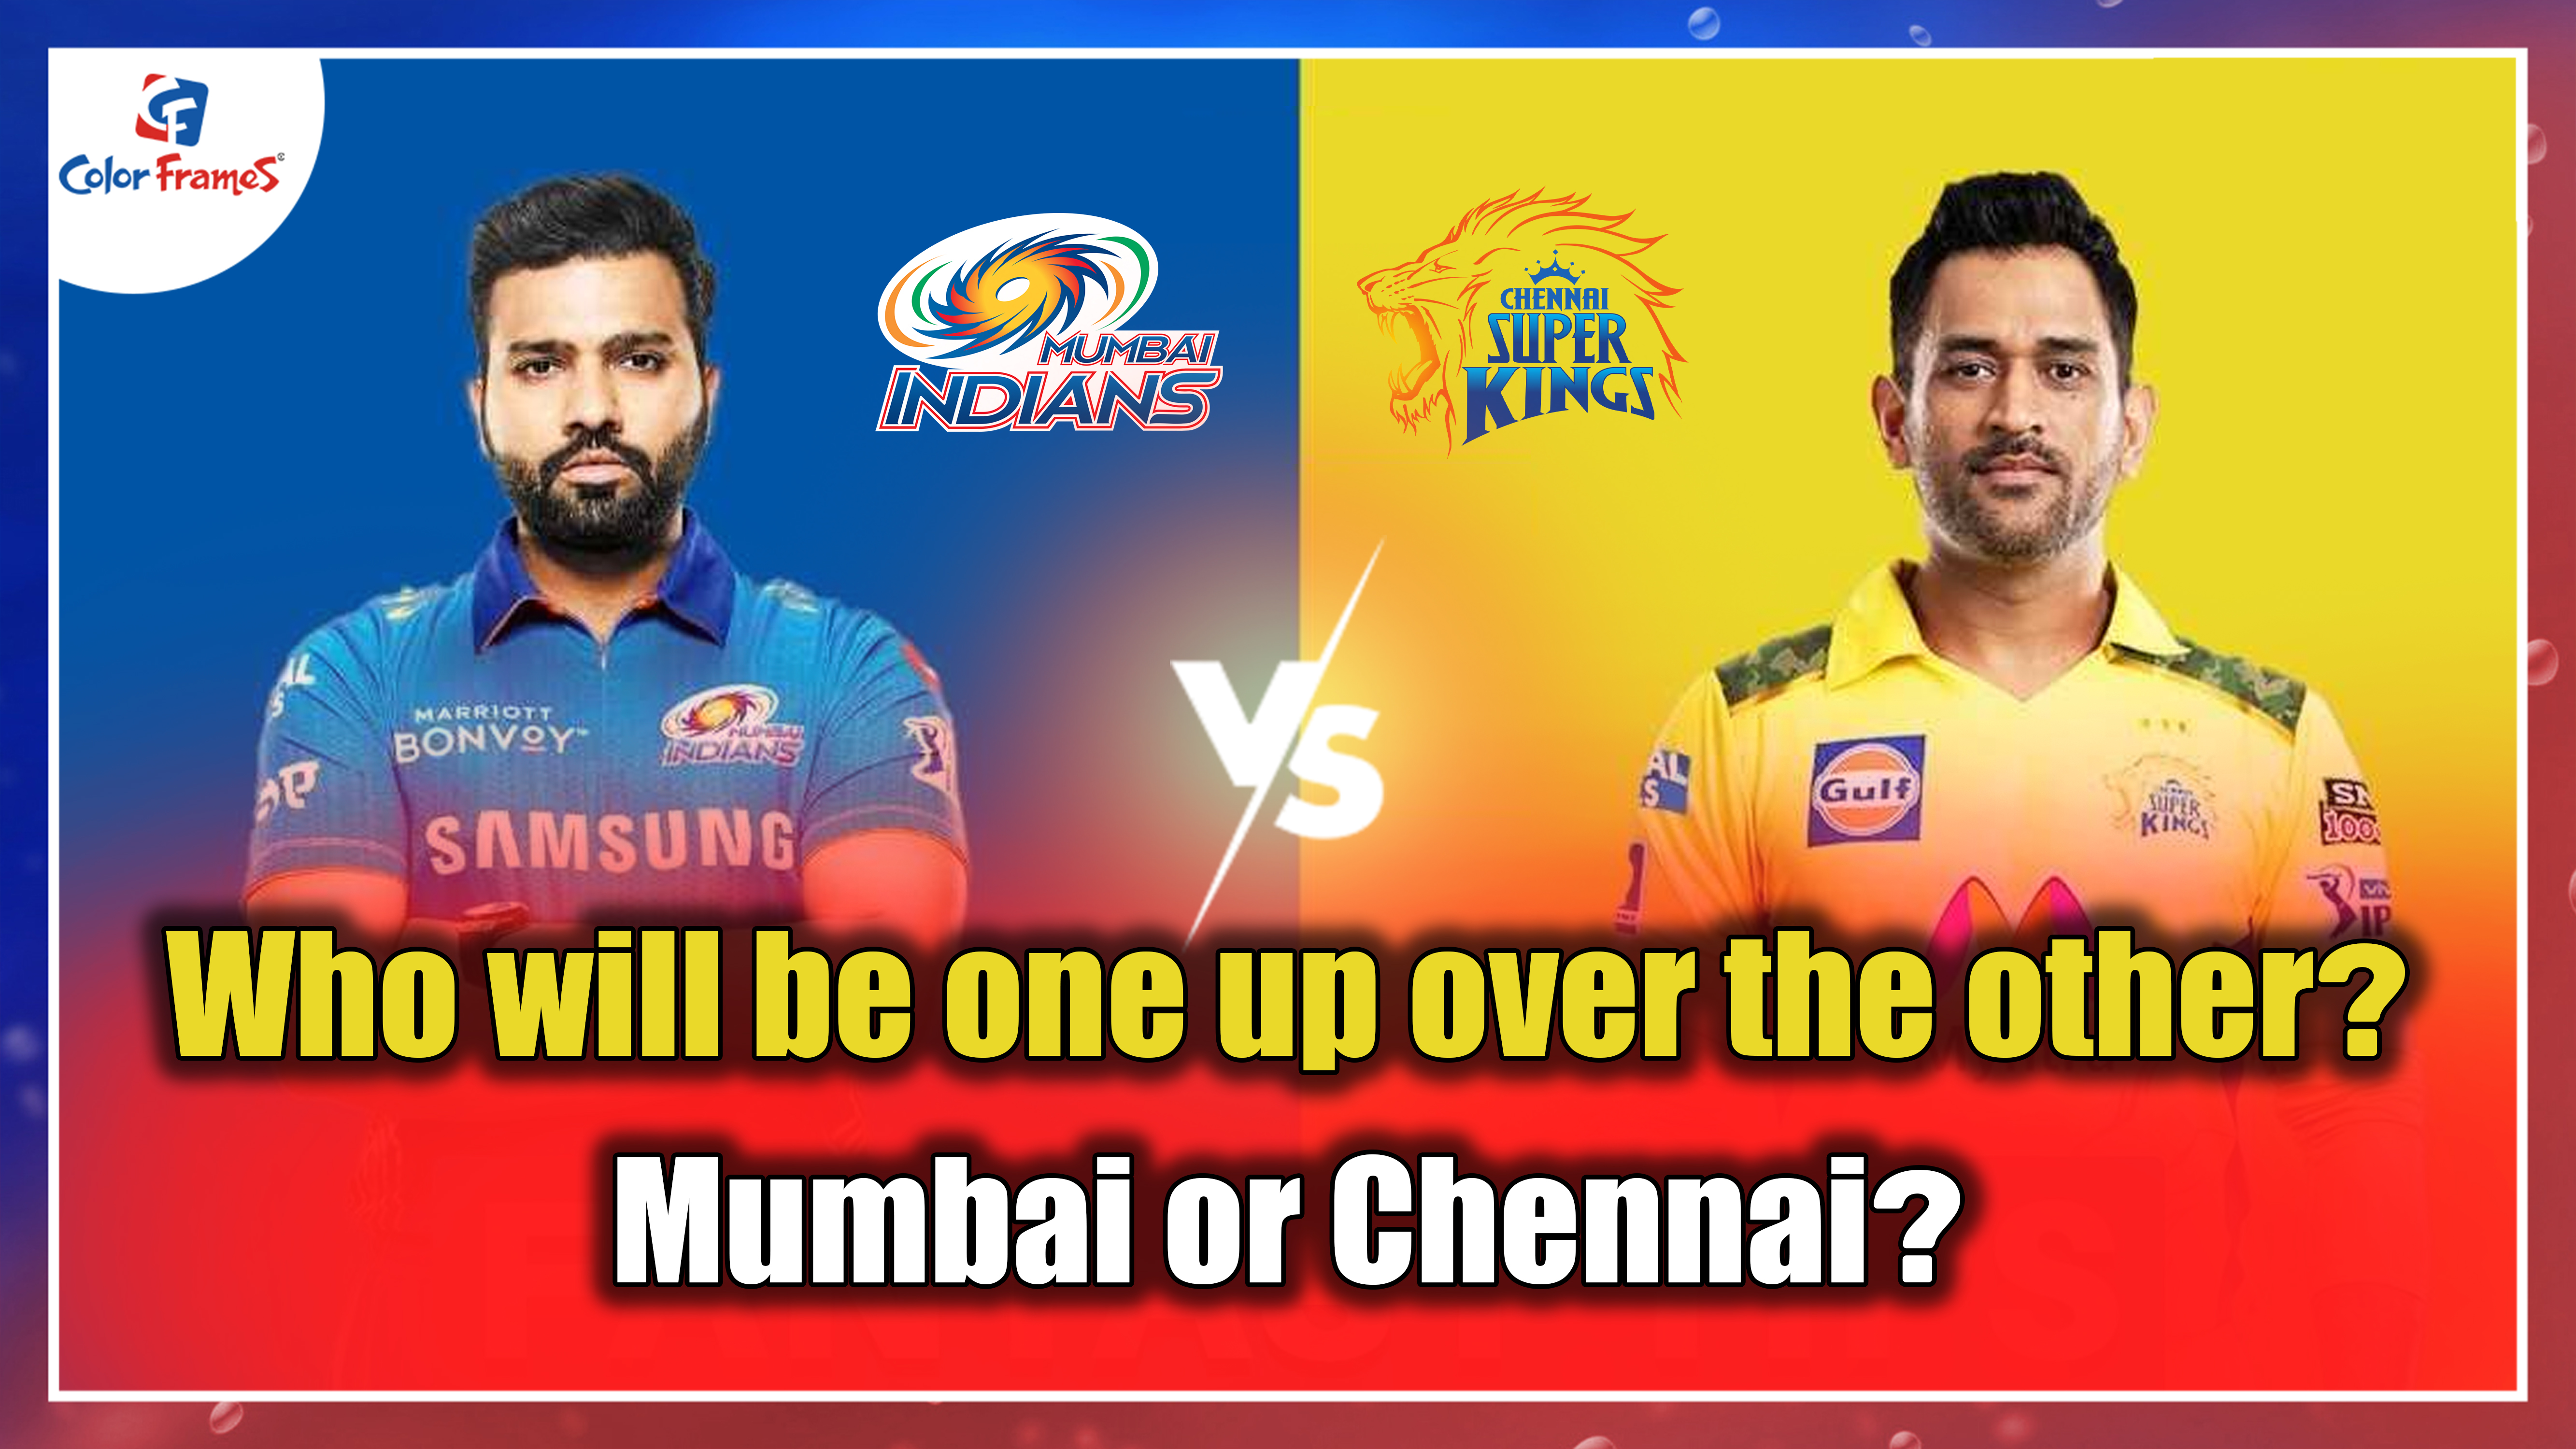 Who will be one up over the other? Mumbai or Chennai?